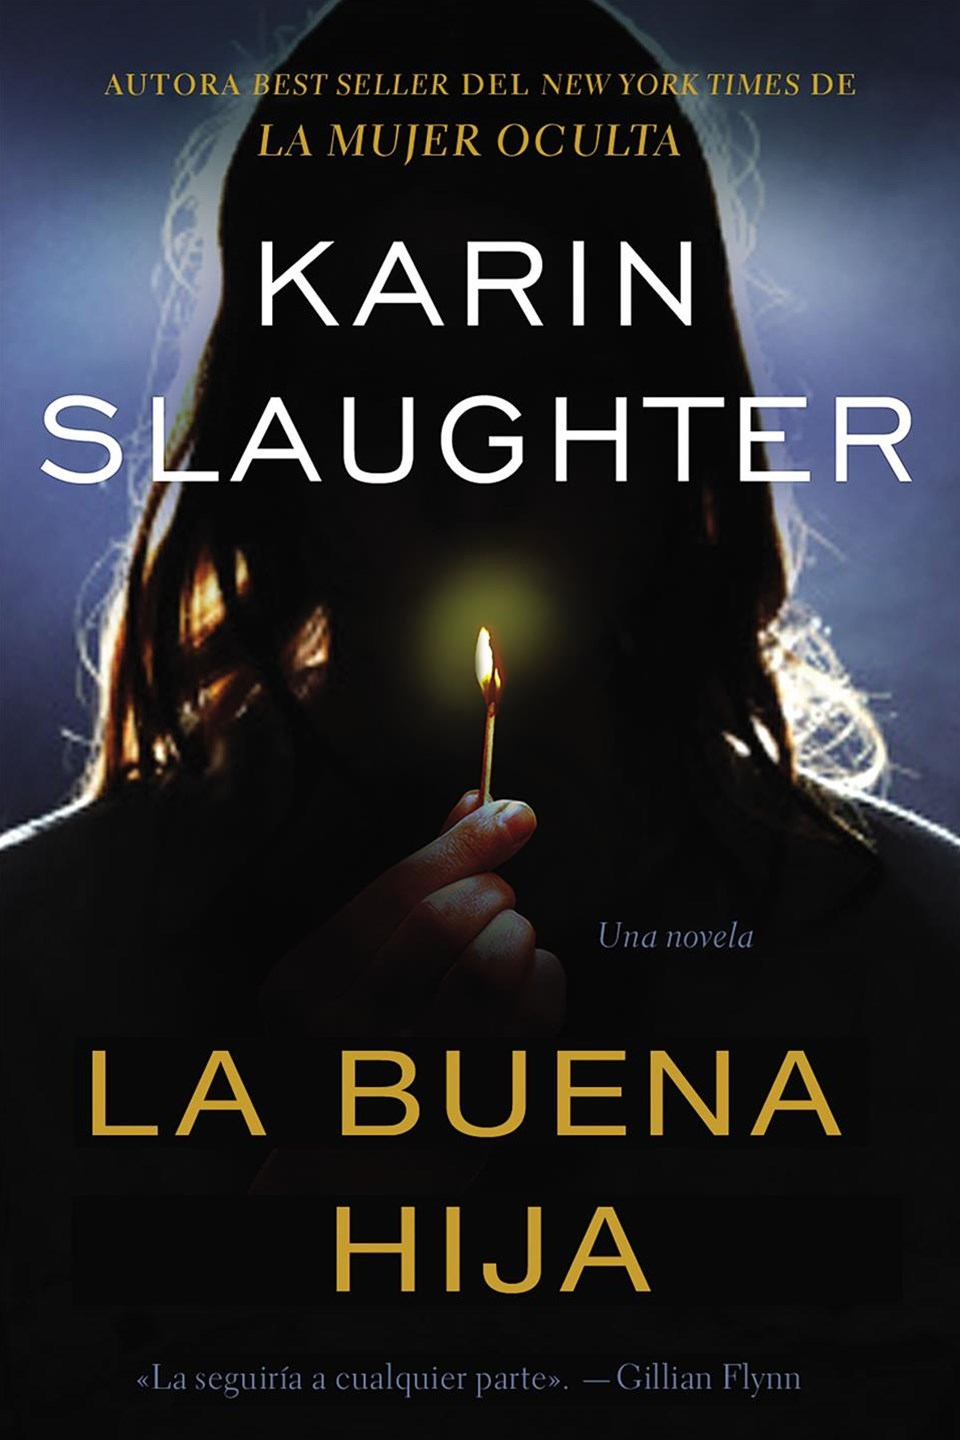 La buena hija/ The good daughter